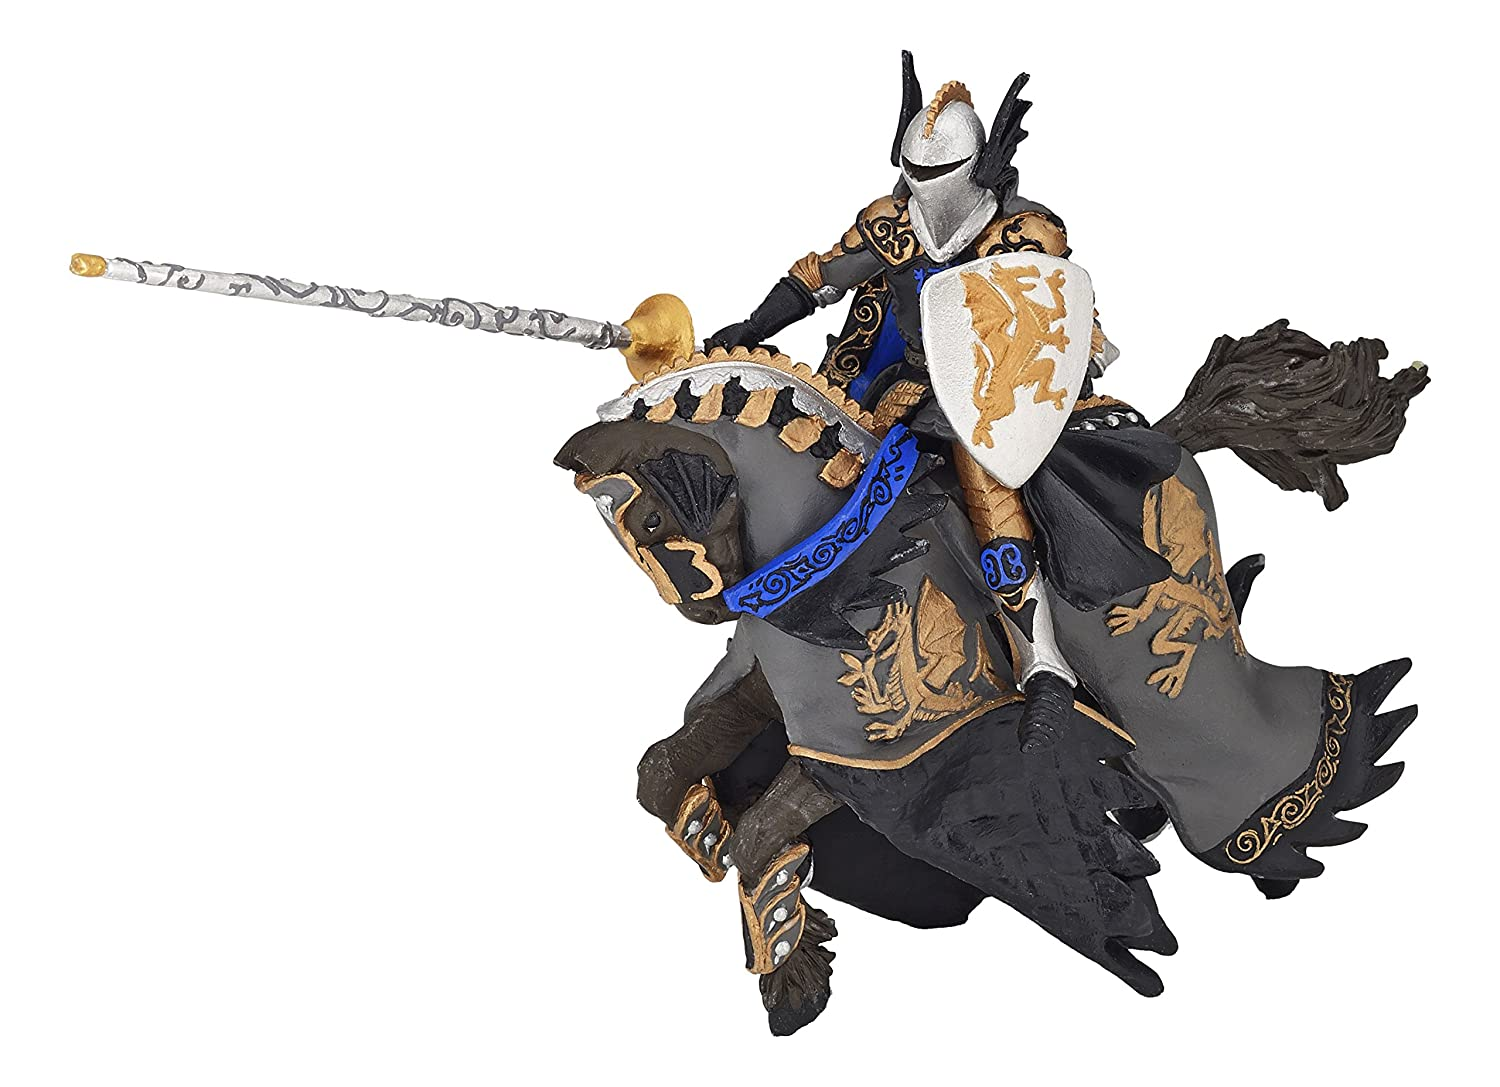 Papo Dragon Black Prince and Horse Toy Figure